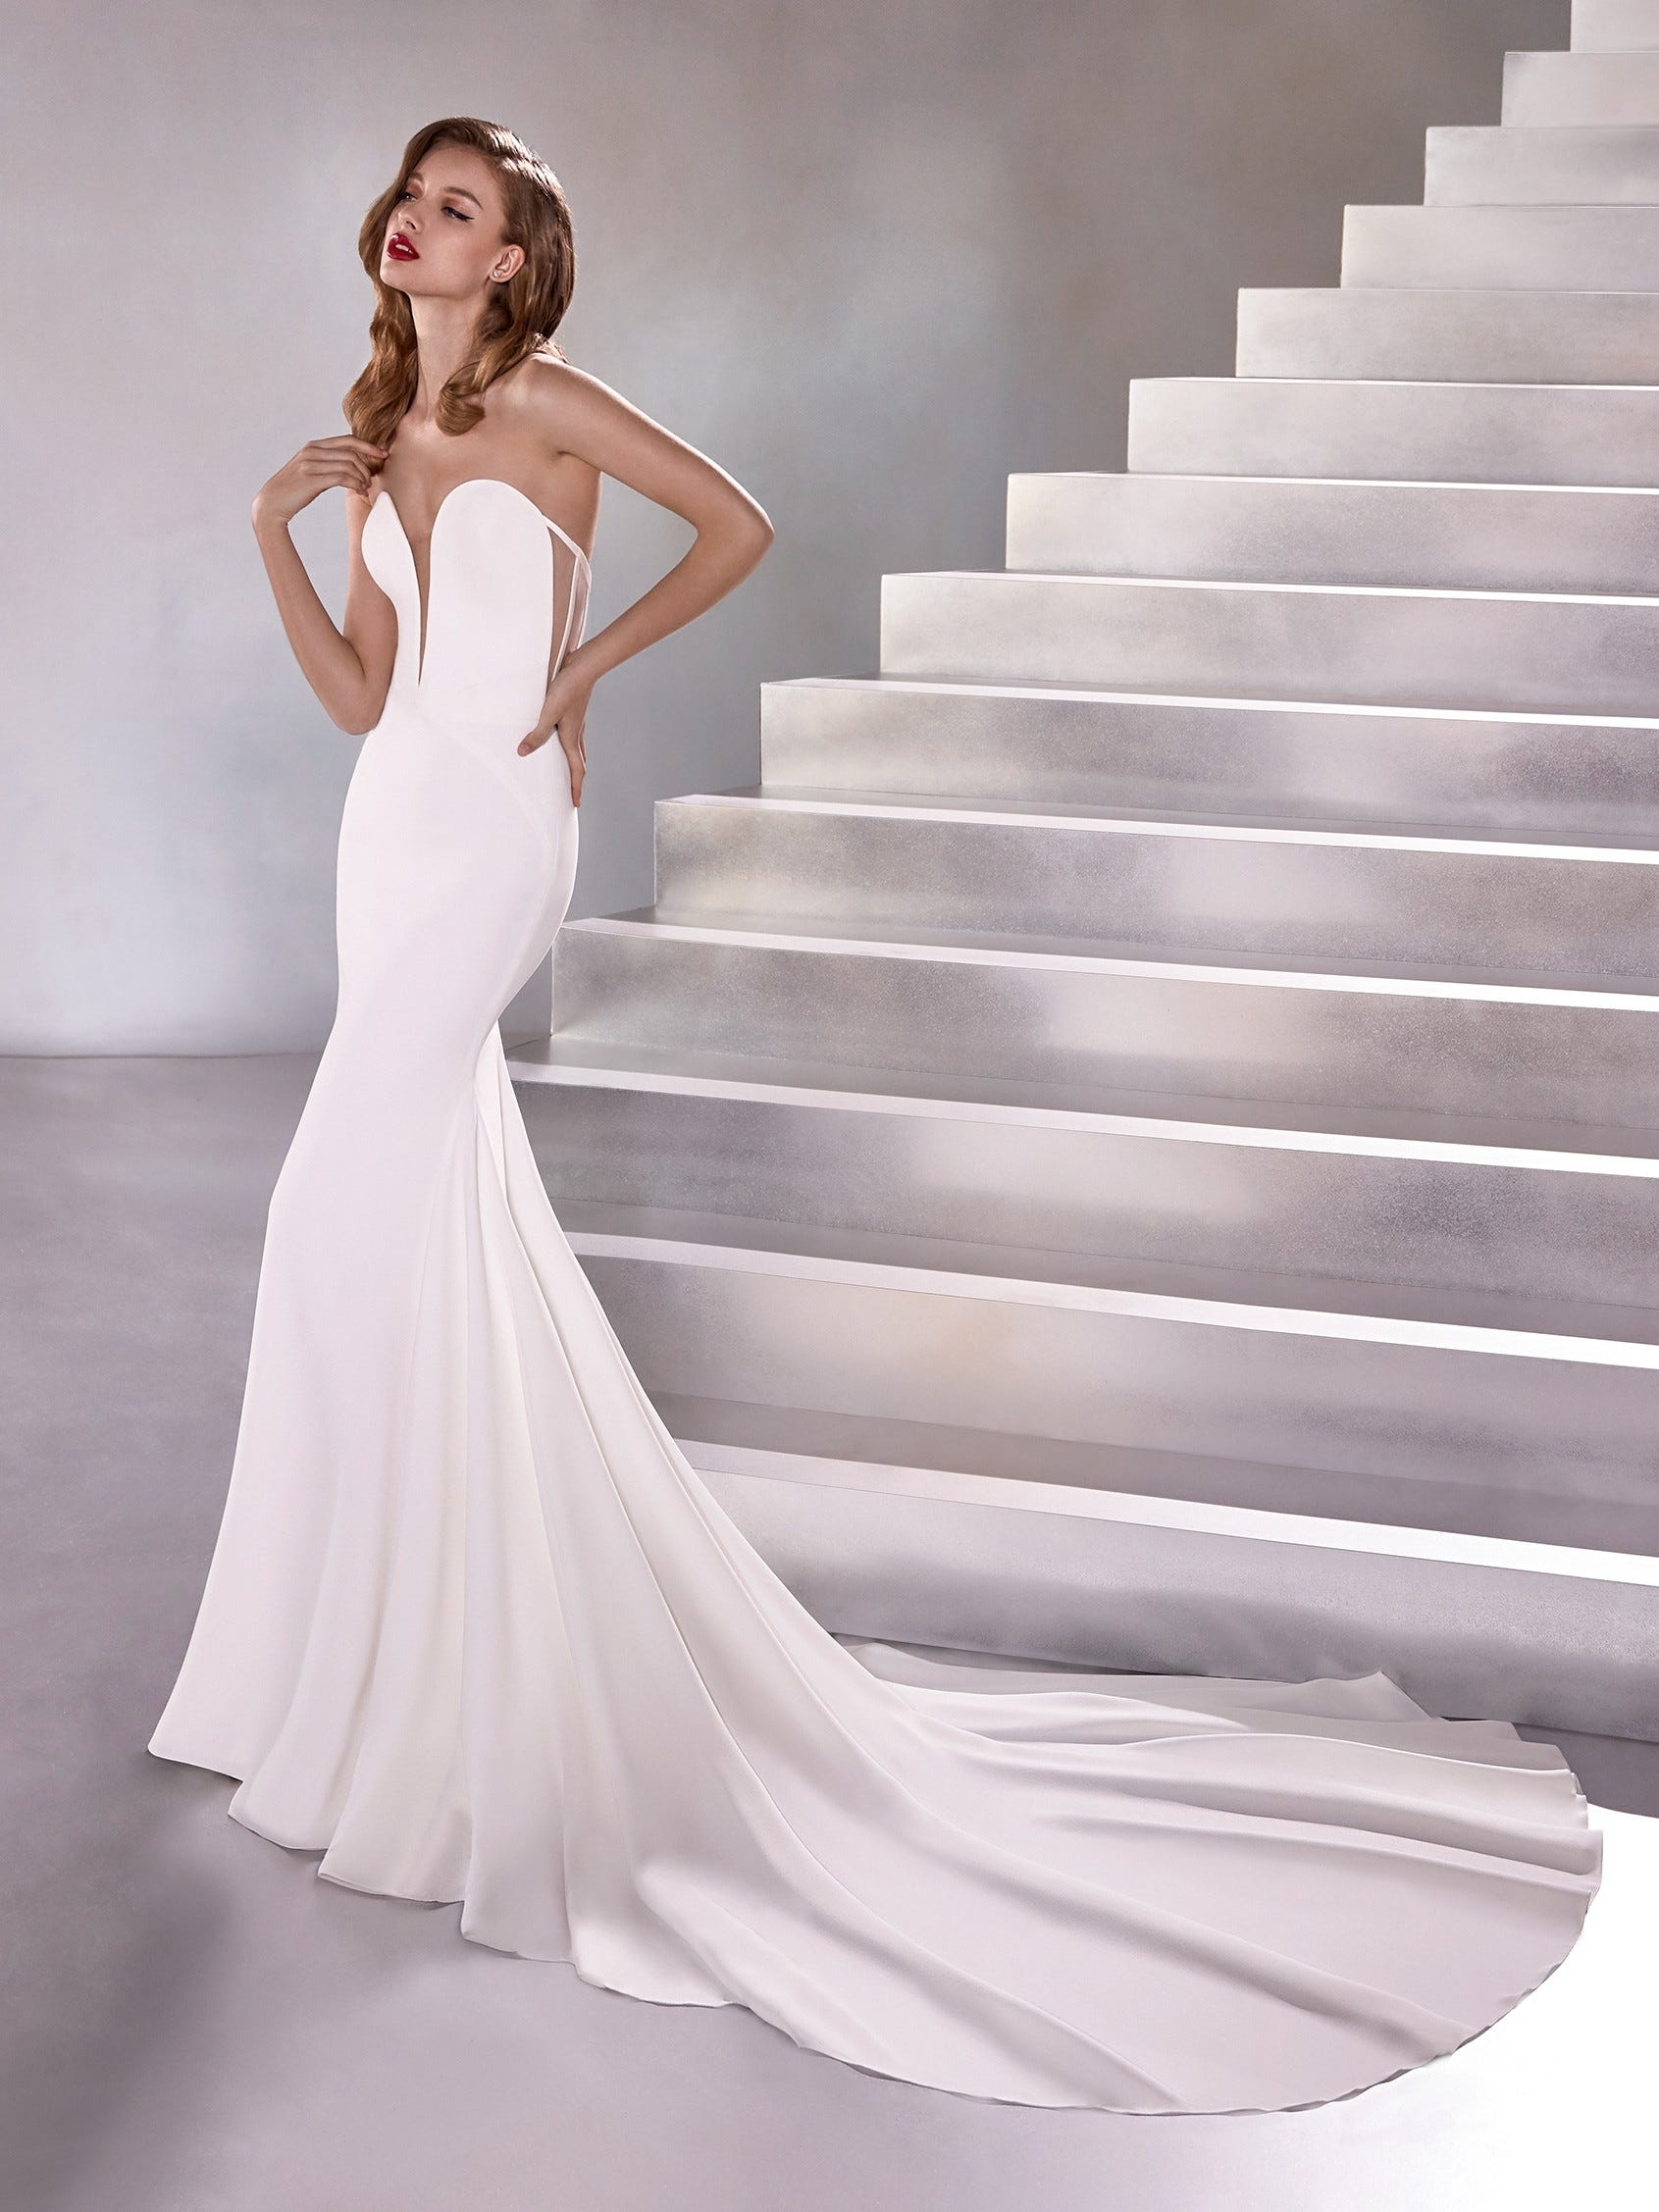 Lux Gown Sample - Size 10US